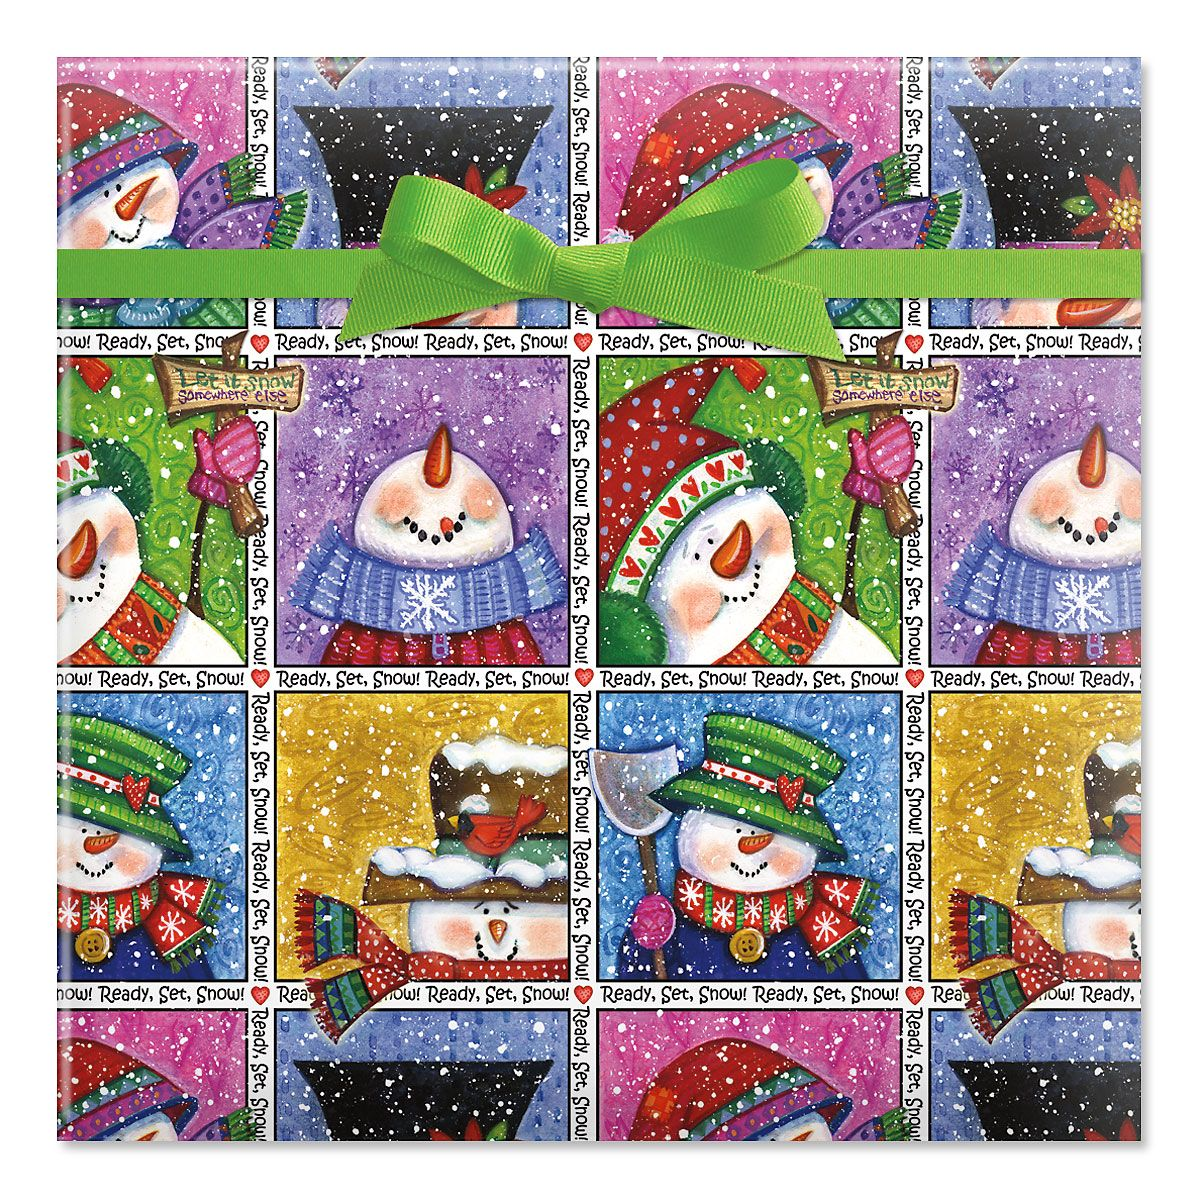 Snowman in Squares Jumbo Rolled Gift Wrap